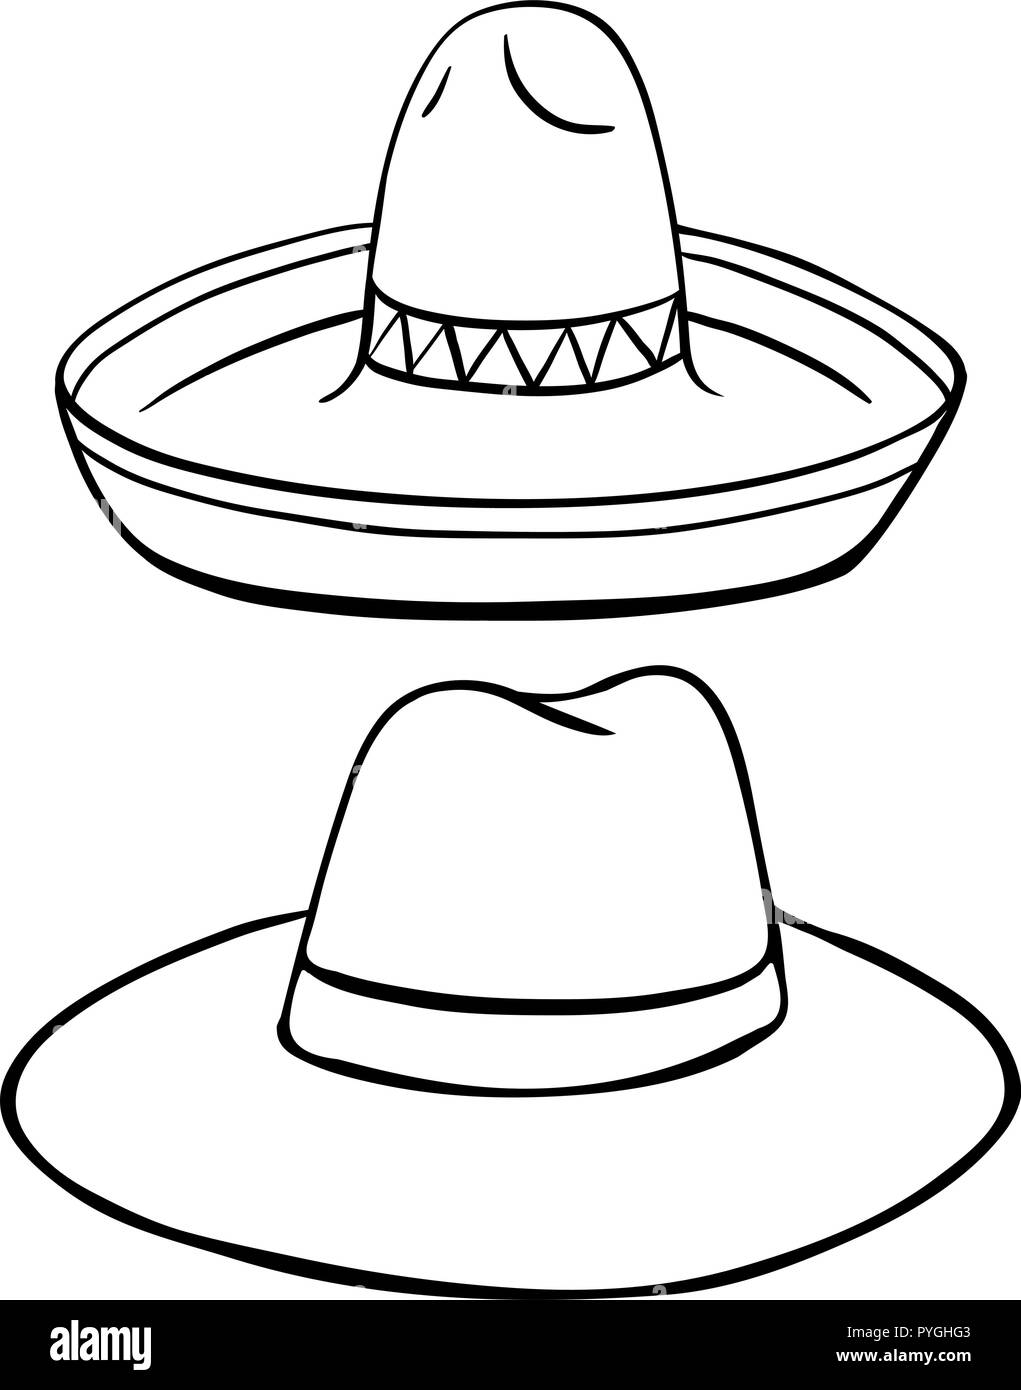 Two styles of hats  illustration - Stock Image